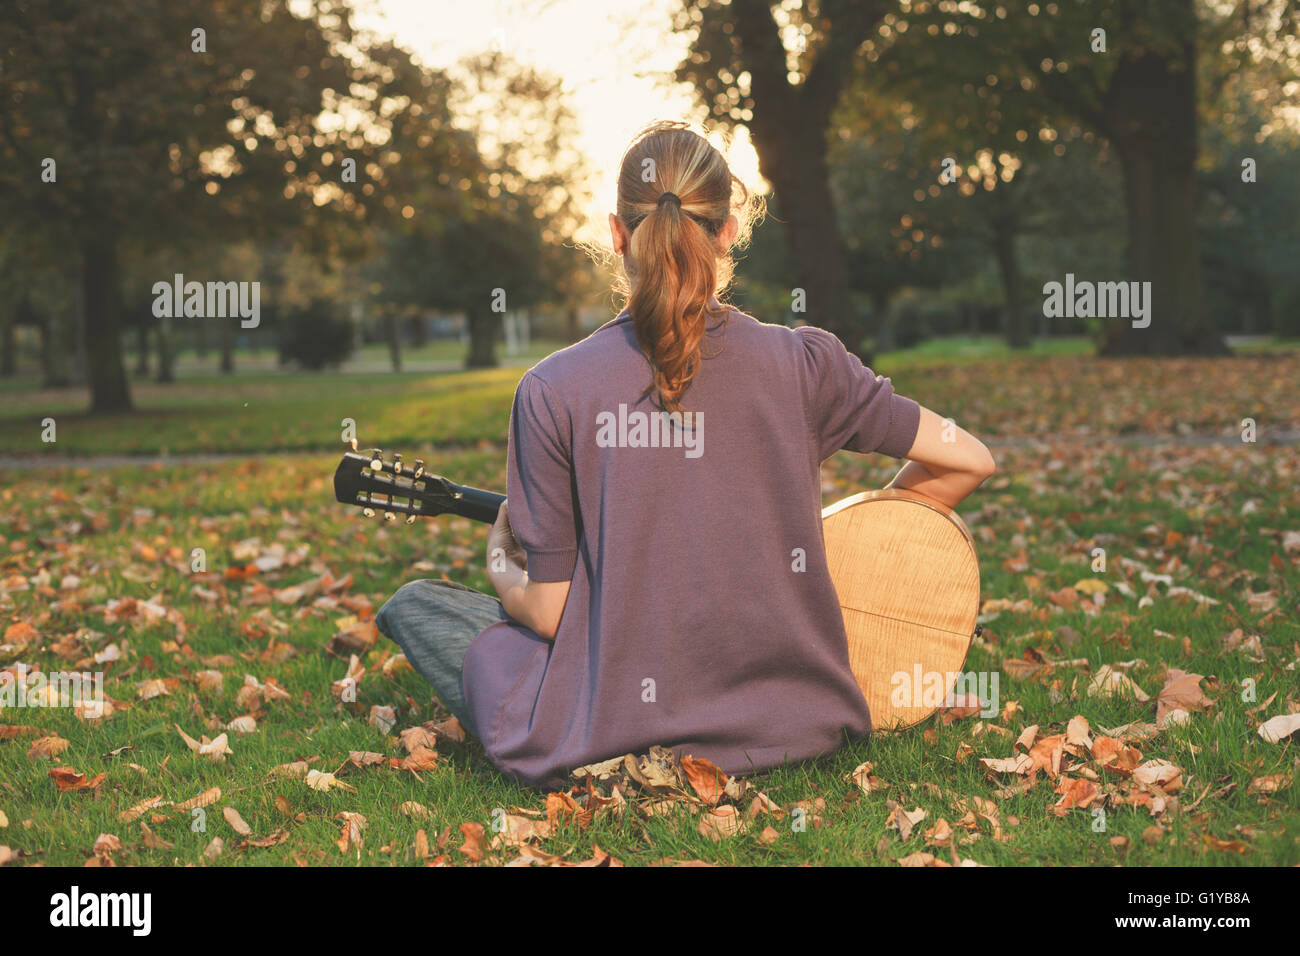 Rear view of young woman sitting on the grass and playing guitar in the park at sunset - Stock Image